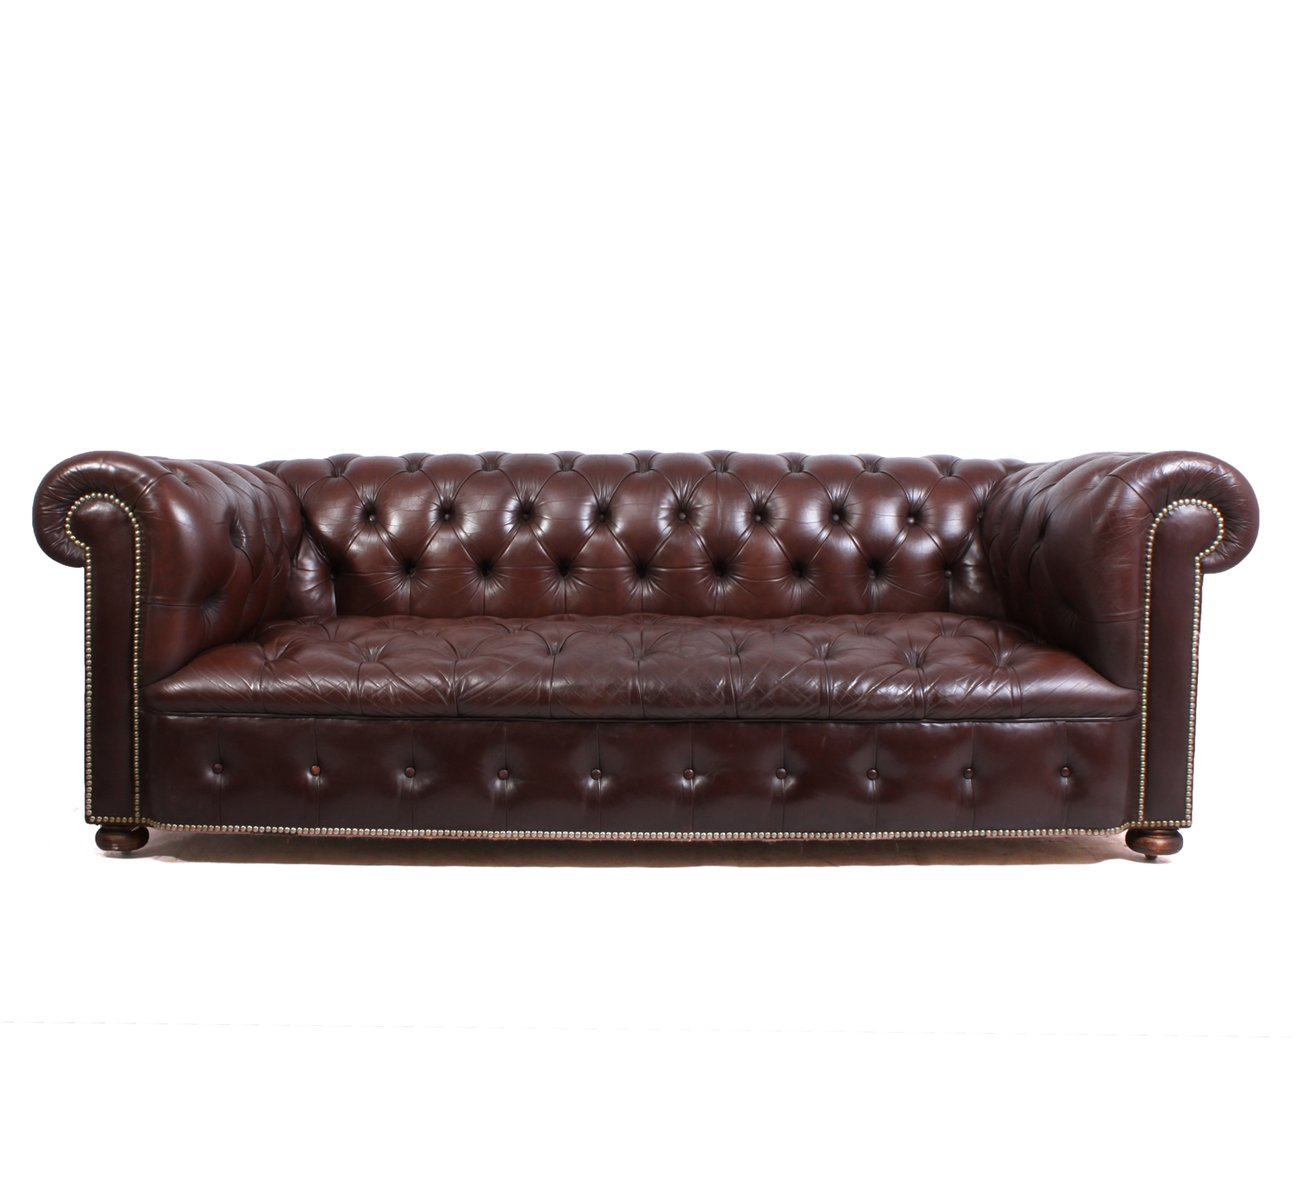 Vintage Leather Chesterfield Sofa 1960s For Sale At Pamono